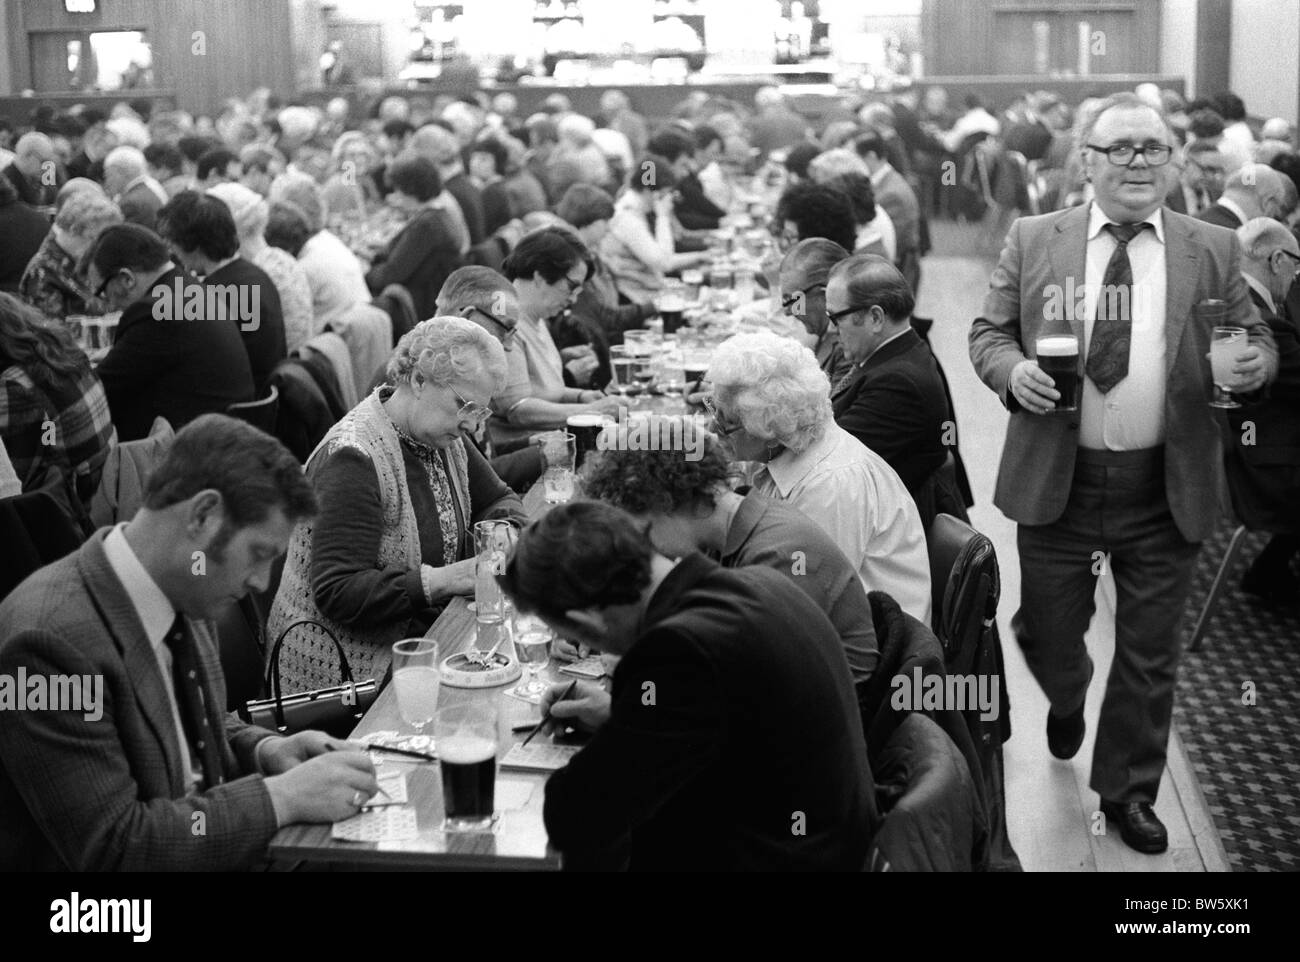 Coventry working mens club saturday night after the bingo evening entertainment 1980s england 80s